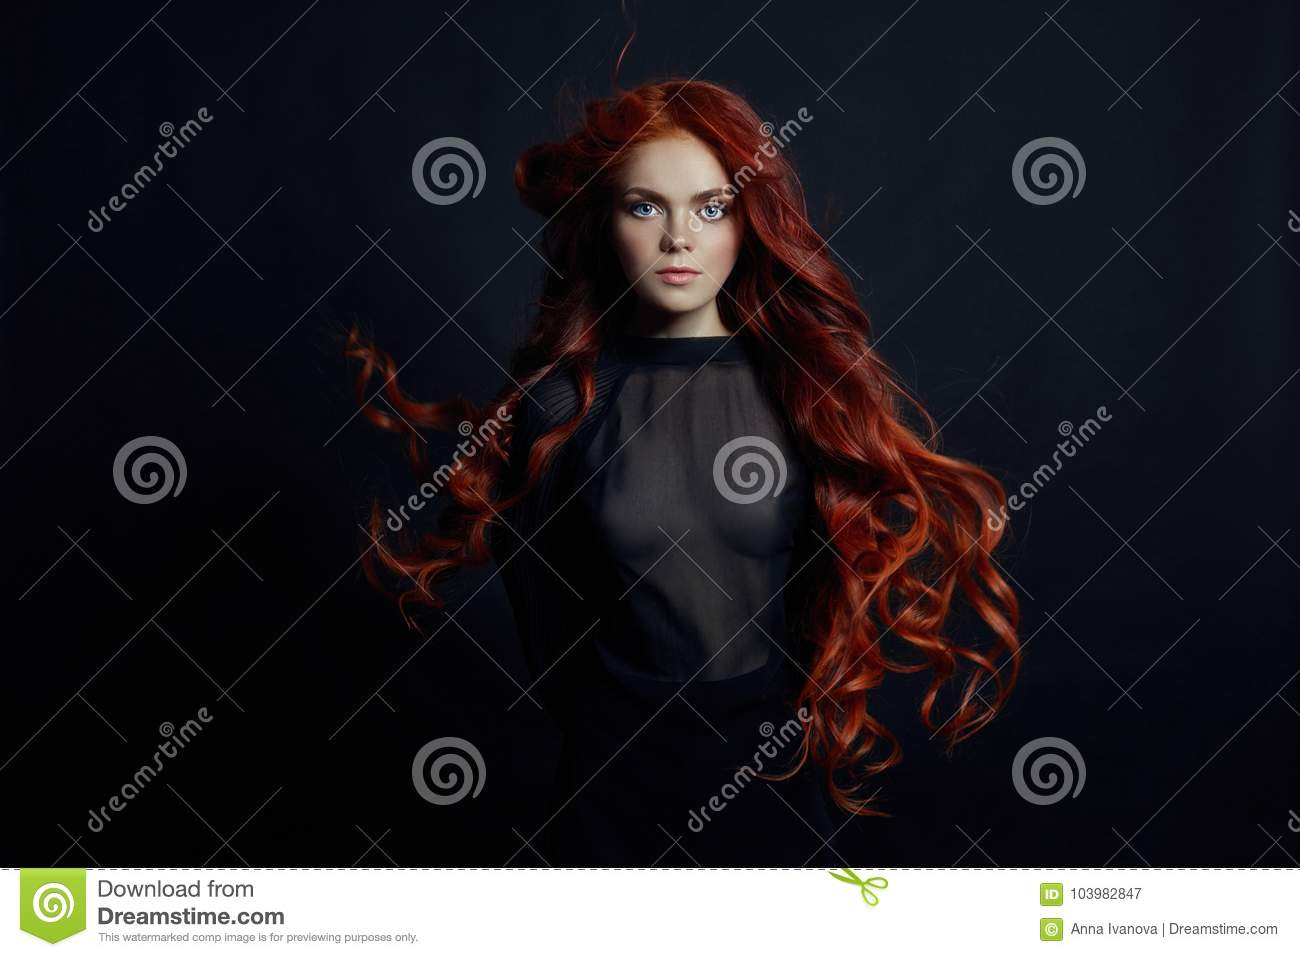 Portrait of redhead woman with long hair on black background. Perfect girl with the blue eyes, nice clean skin